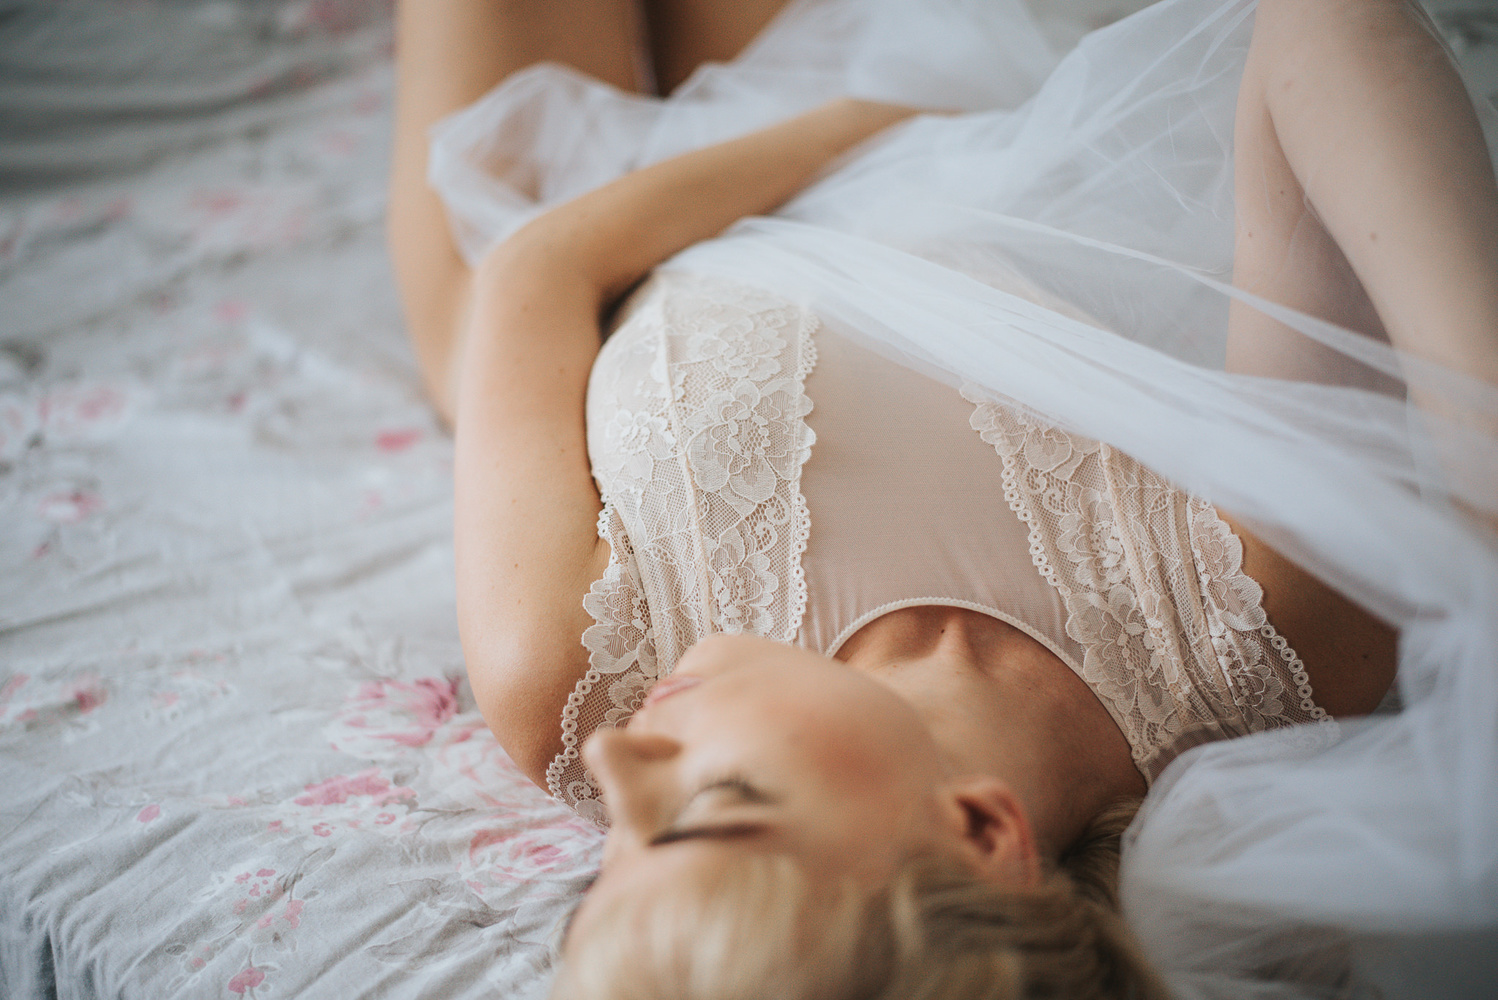 A young blond woman laid down on the bed.